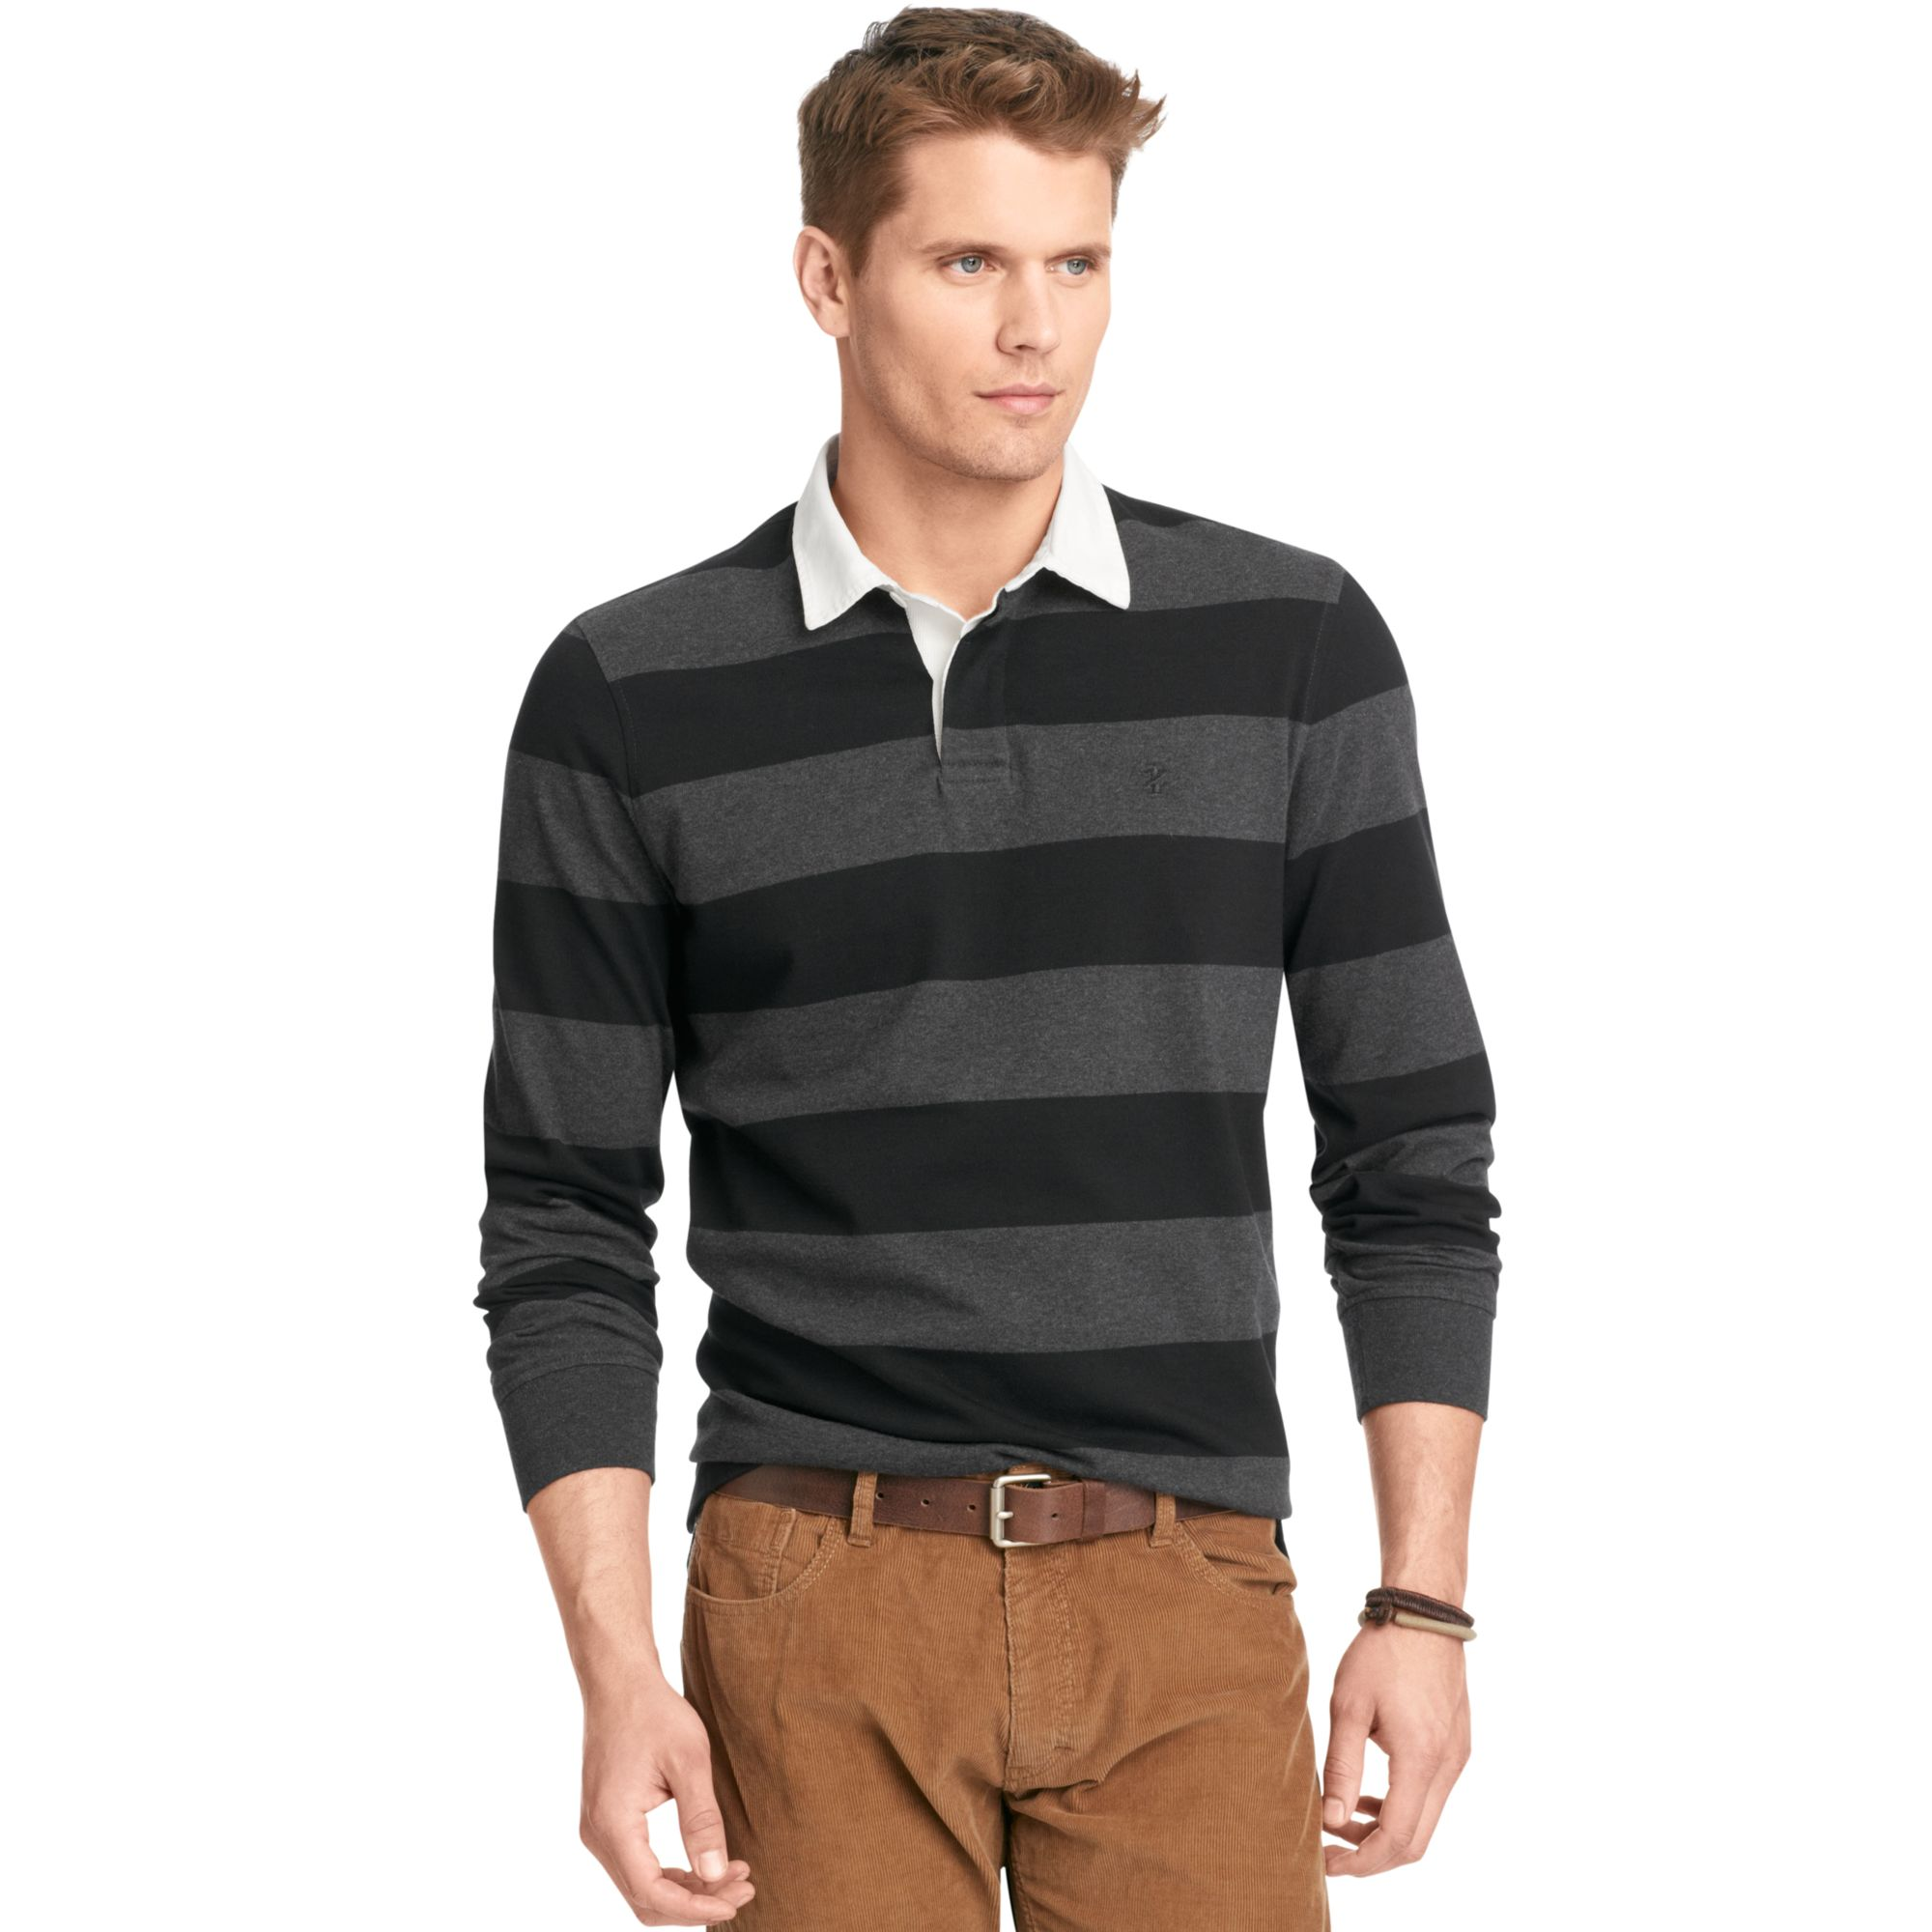 Izod Izod Shirt Long Sleeve 5050 Striped Rugby Polo In